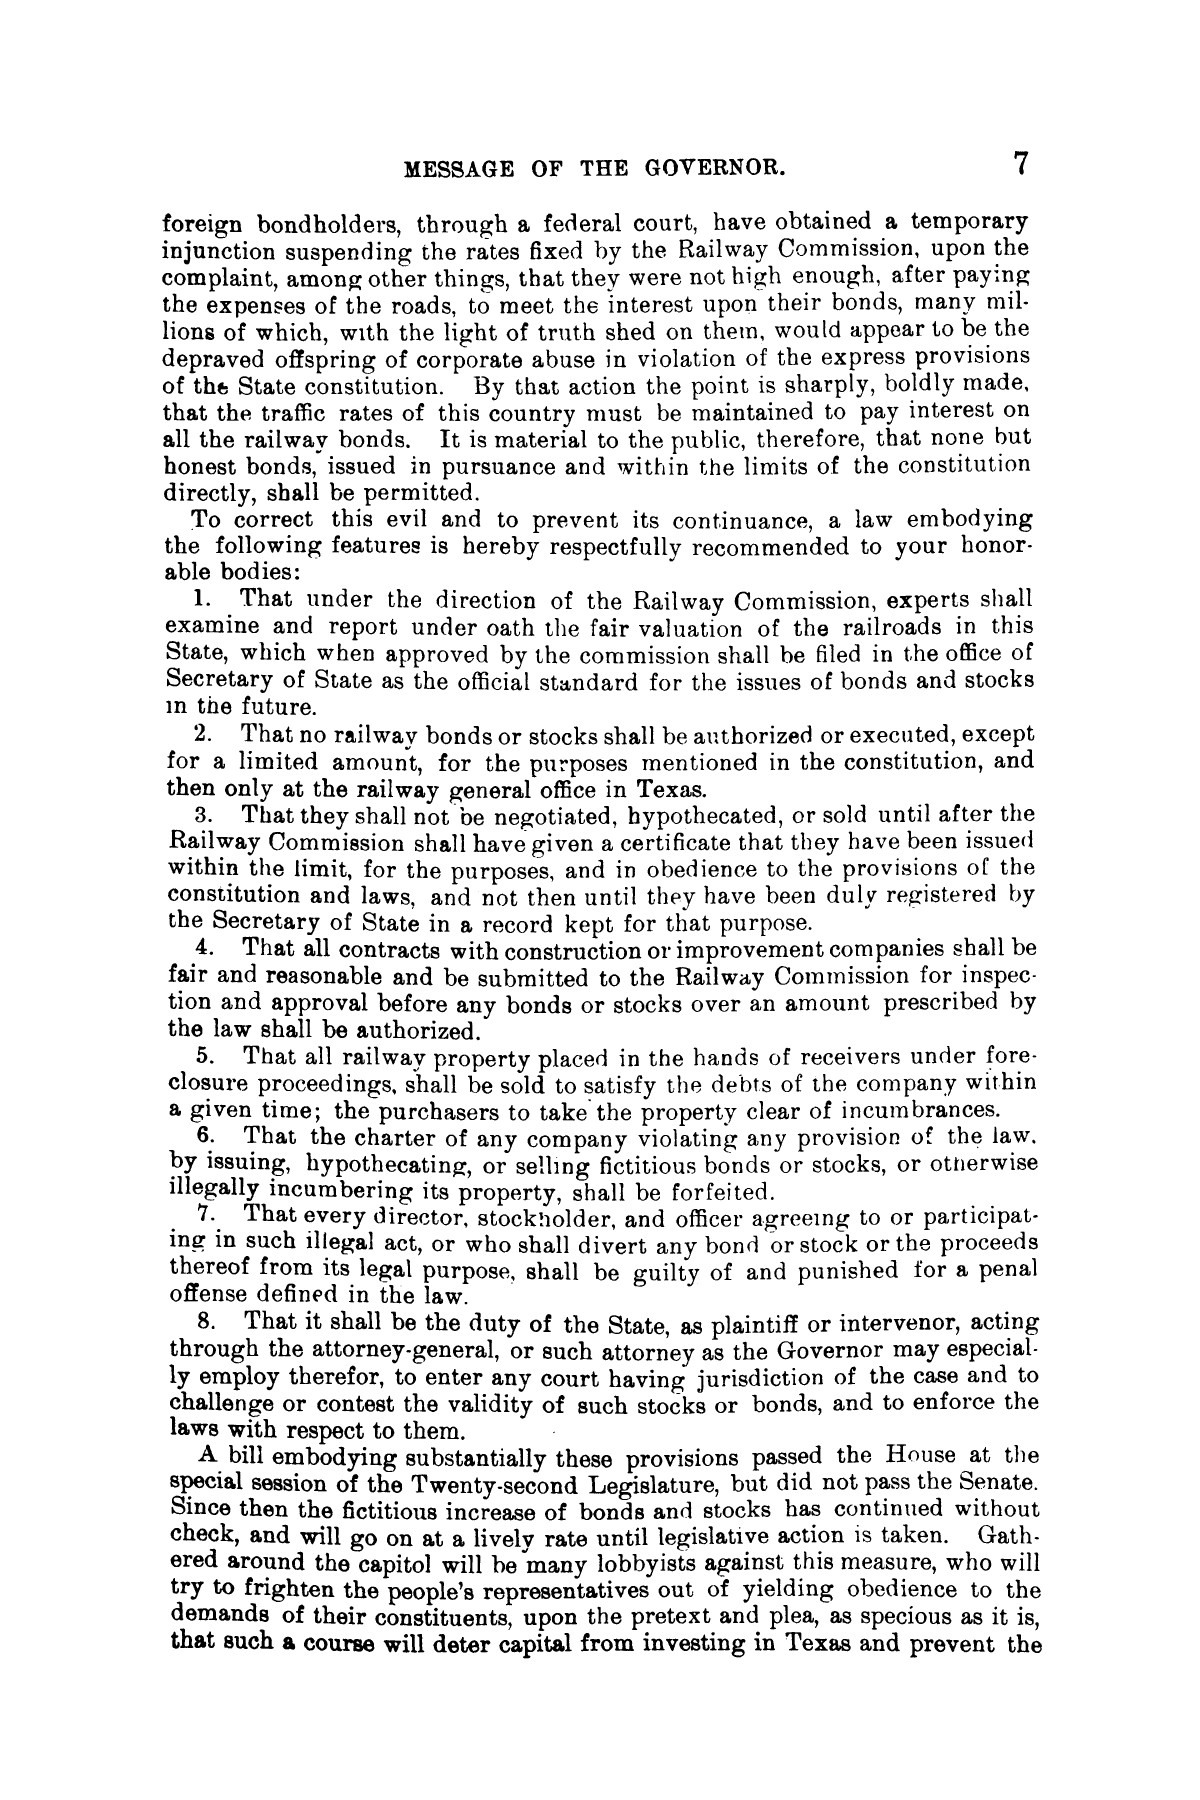 Message of Gov. J. S. Hogg to the twenty-third Legislature of Texas.                                                                                                      [Sequence #]: 7 of 28